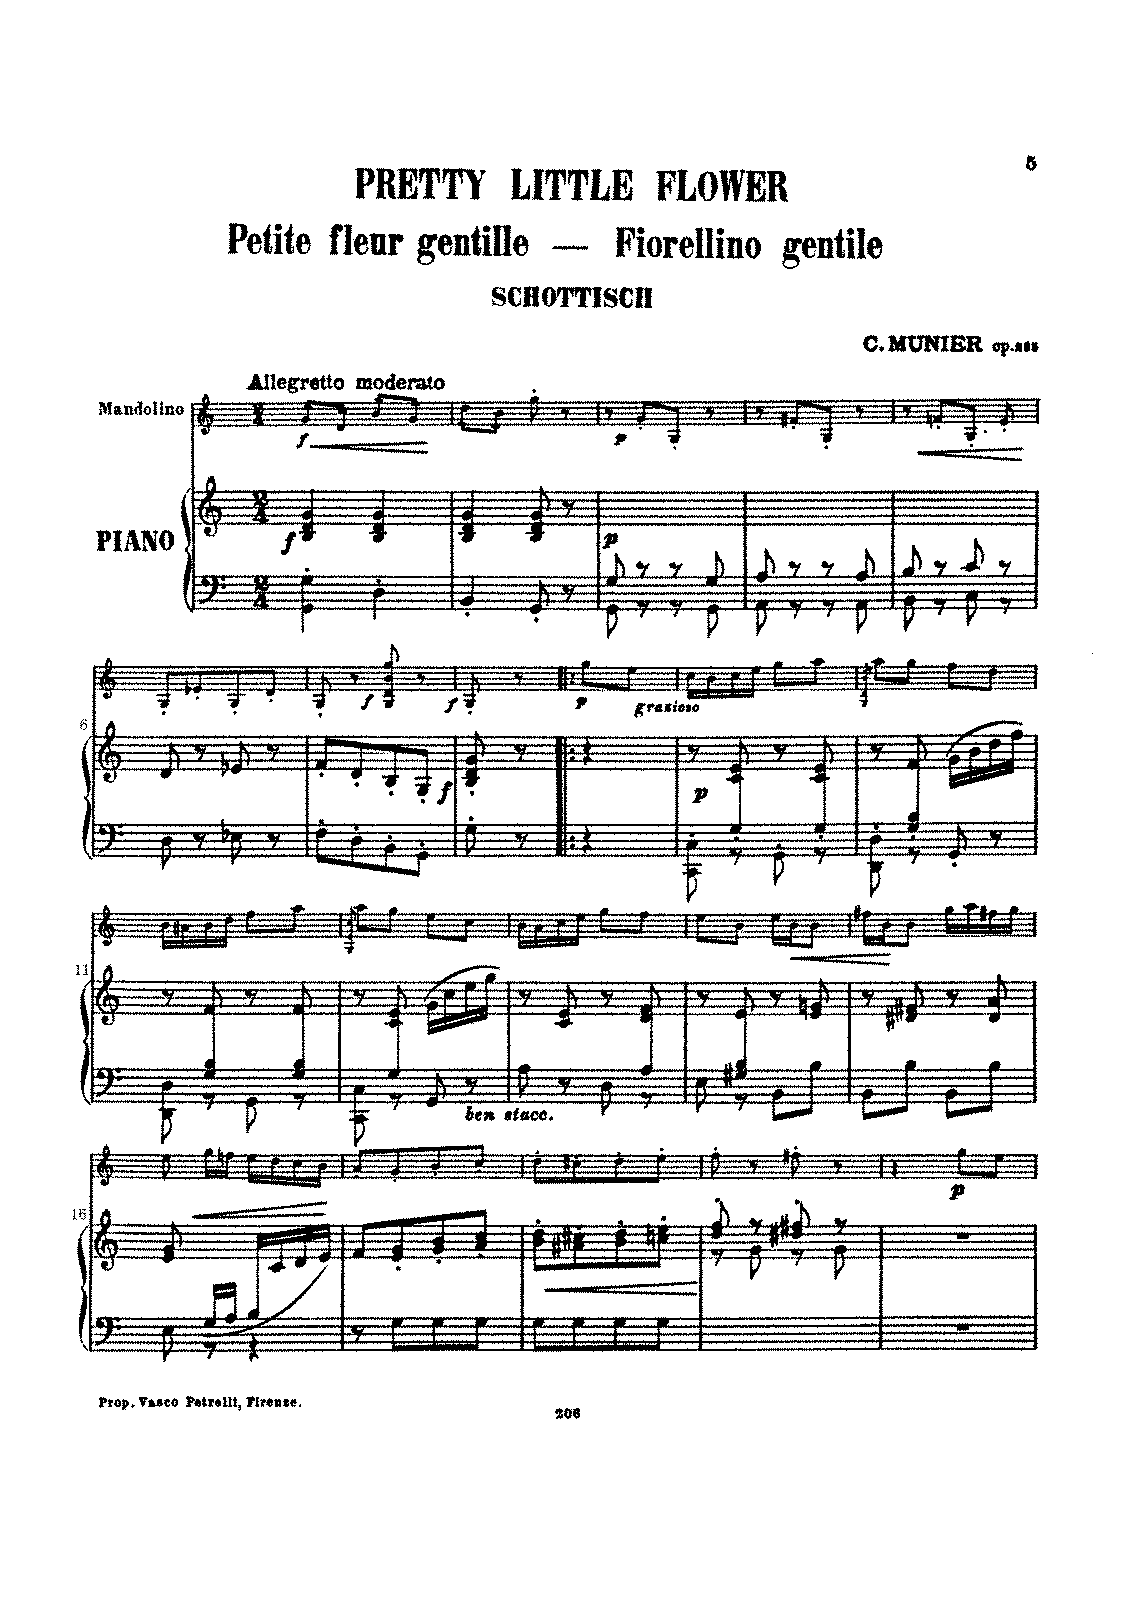 PMLP656838-Fiorellino gentile, Nelly Album Ⅱ.Schottisch Op.234 C.Munier Piano part.pdf